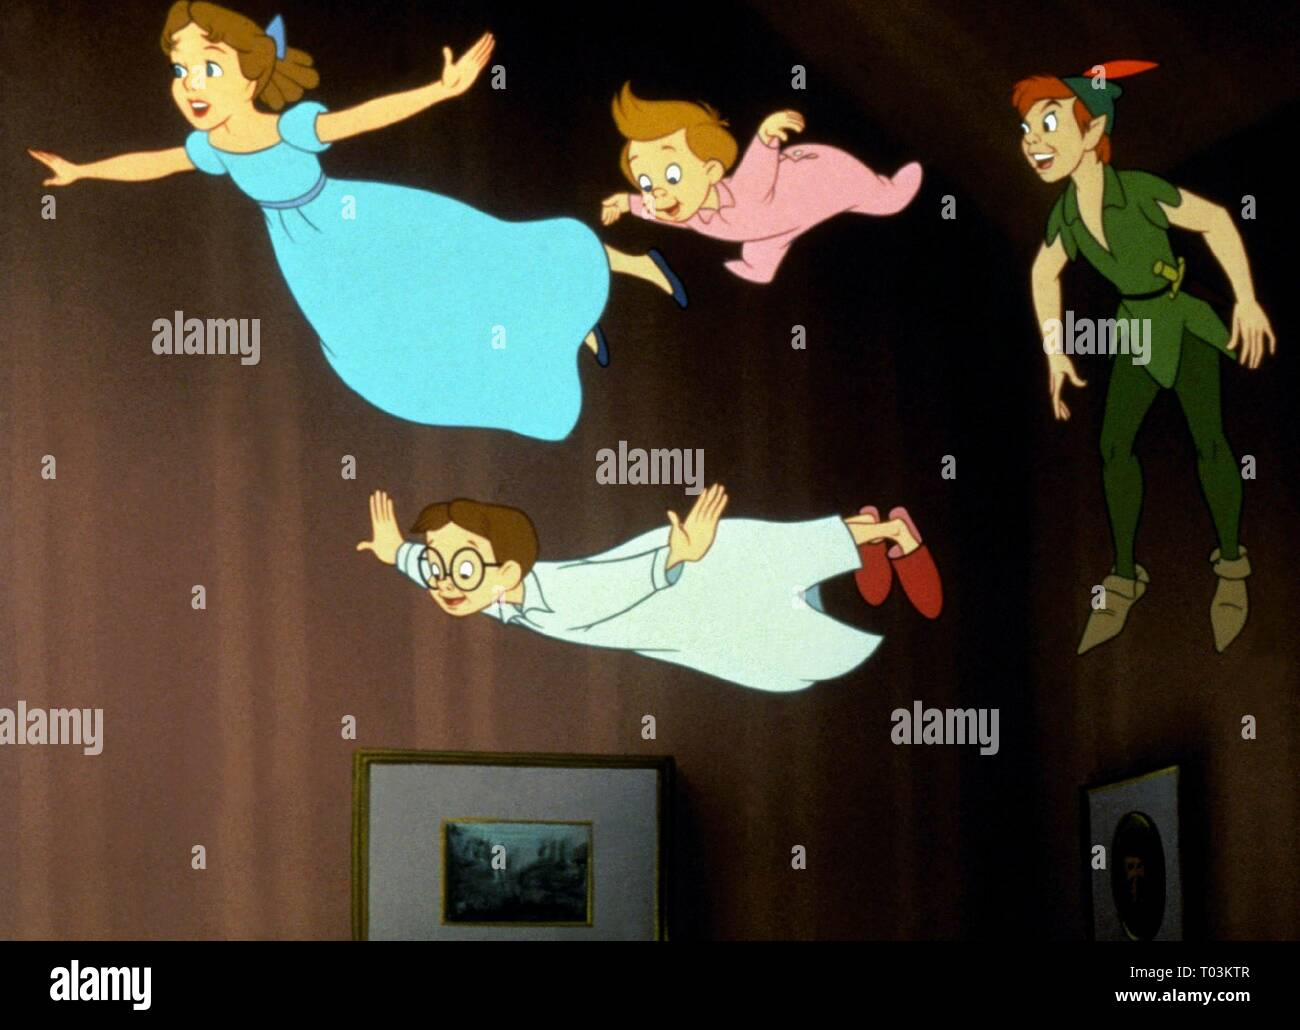 9cfece8a6 Peter Pan And Wendy Stock Photos   Peter Pan And Wendy Stock Images ...